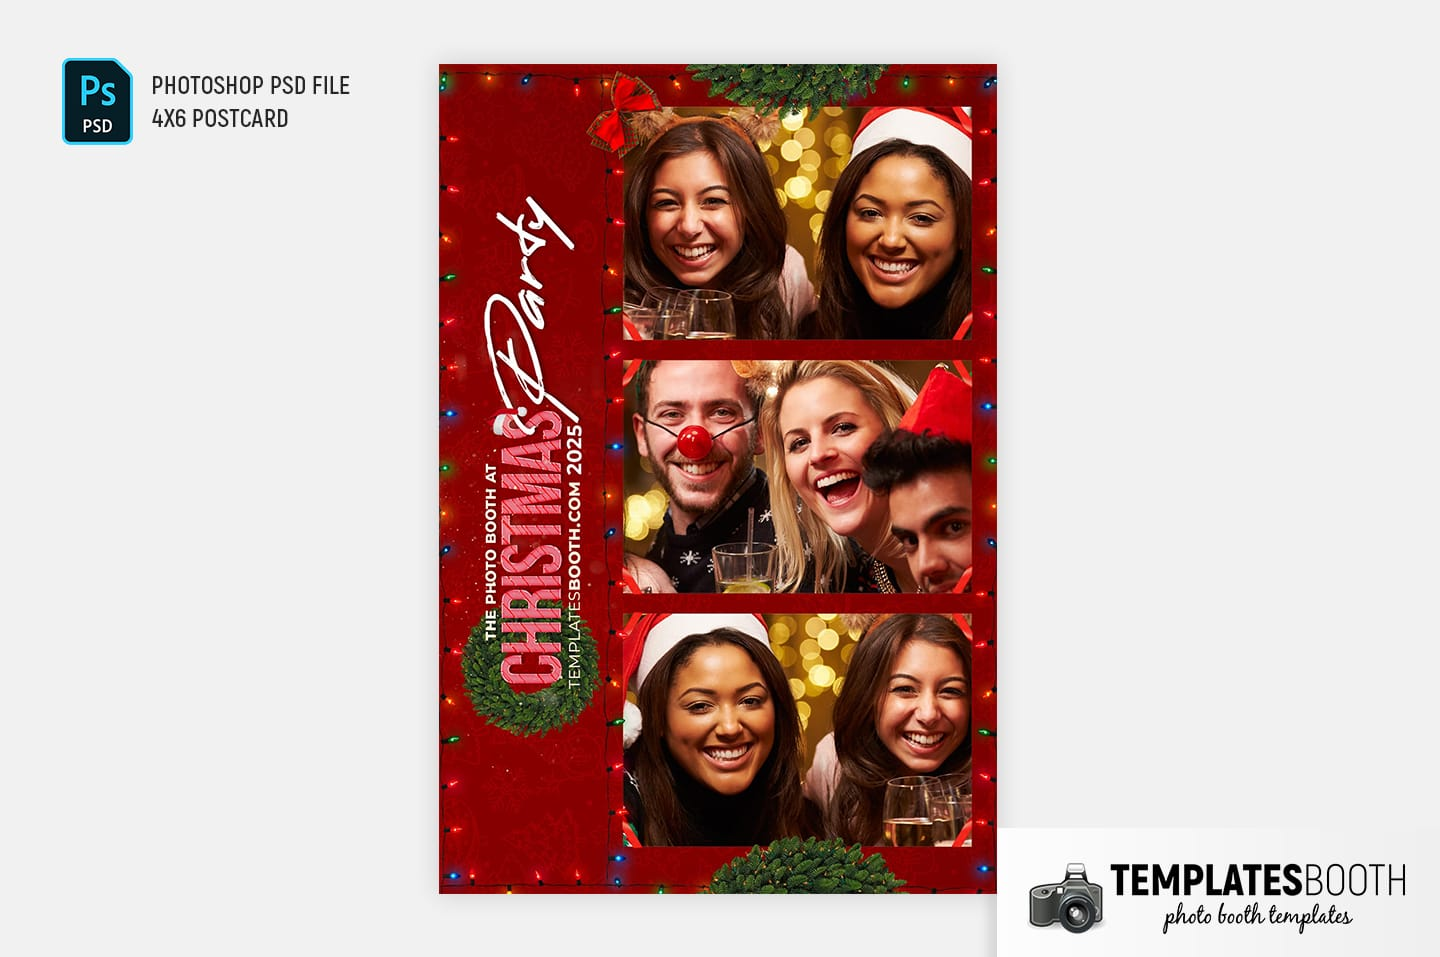 Christmas Party Photo Booth Template (4x6 Postcard)